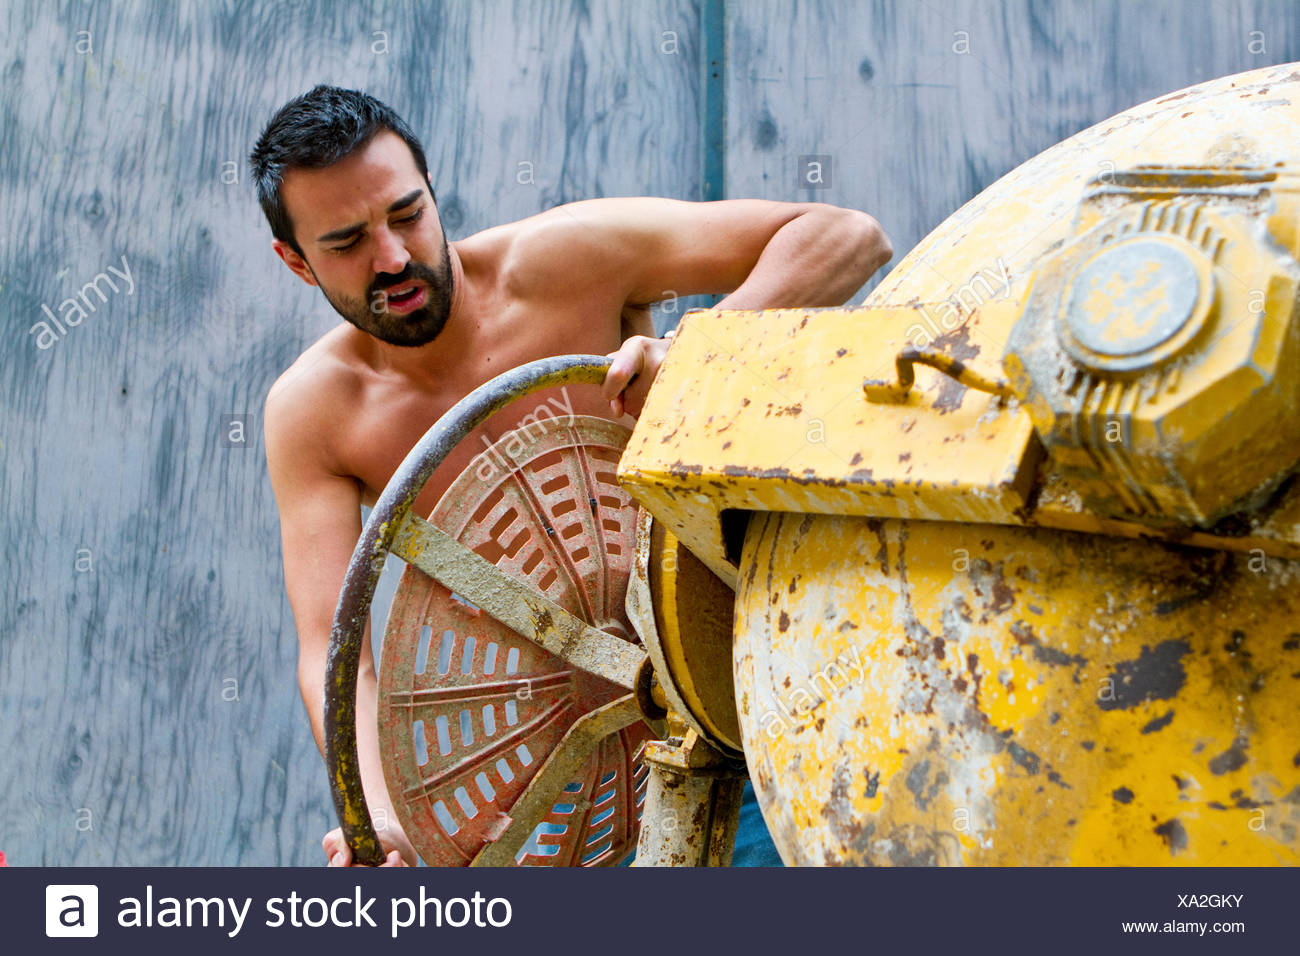 Construction Worker Working On A Cement Mixture - Stock Image